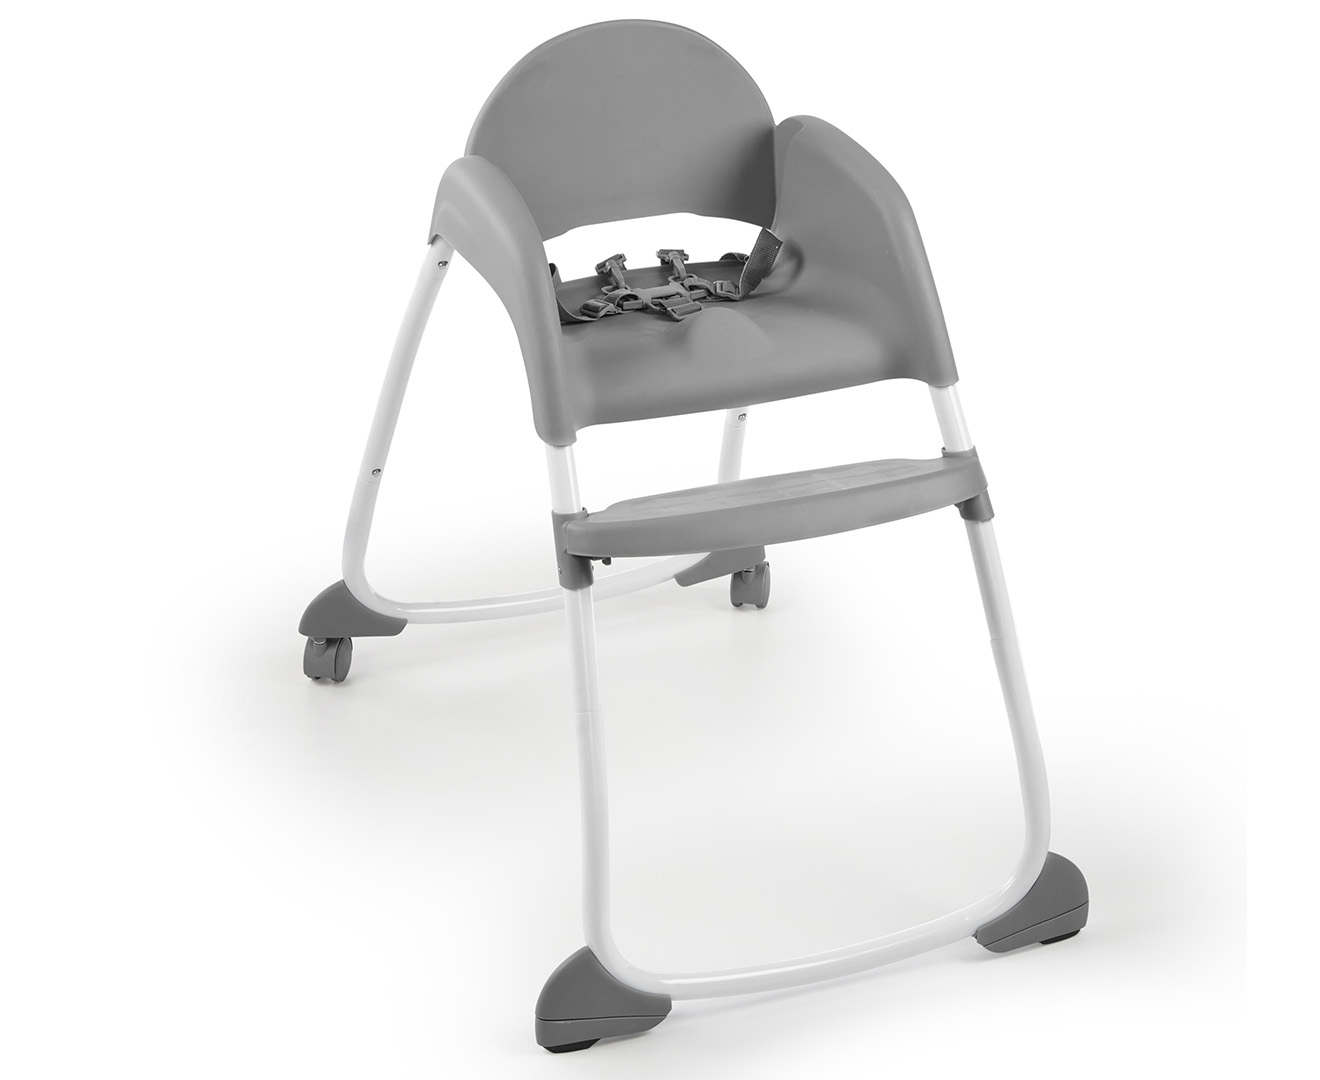 a09491f2ed89 Ingenuity Trio 3-In-1 Deluxe High Chair - Vesper